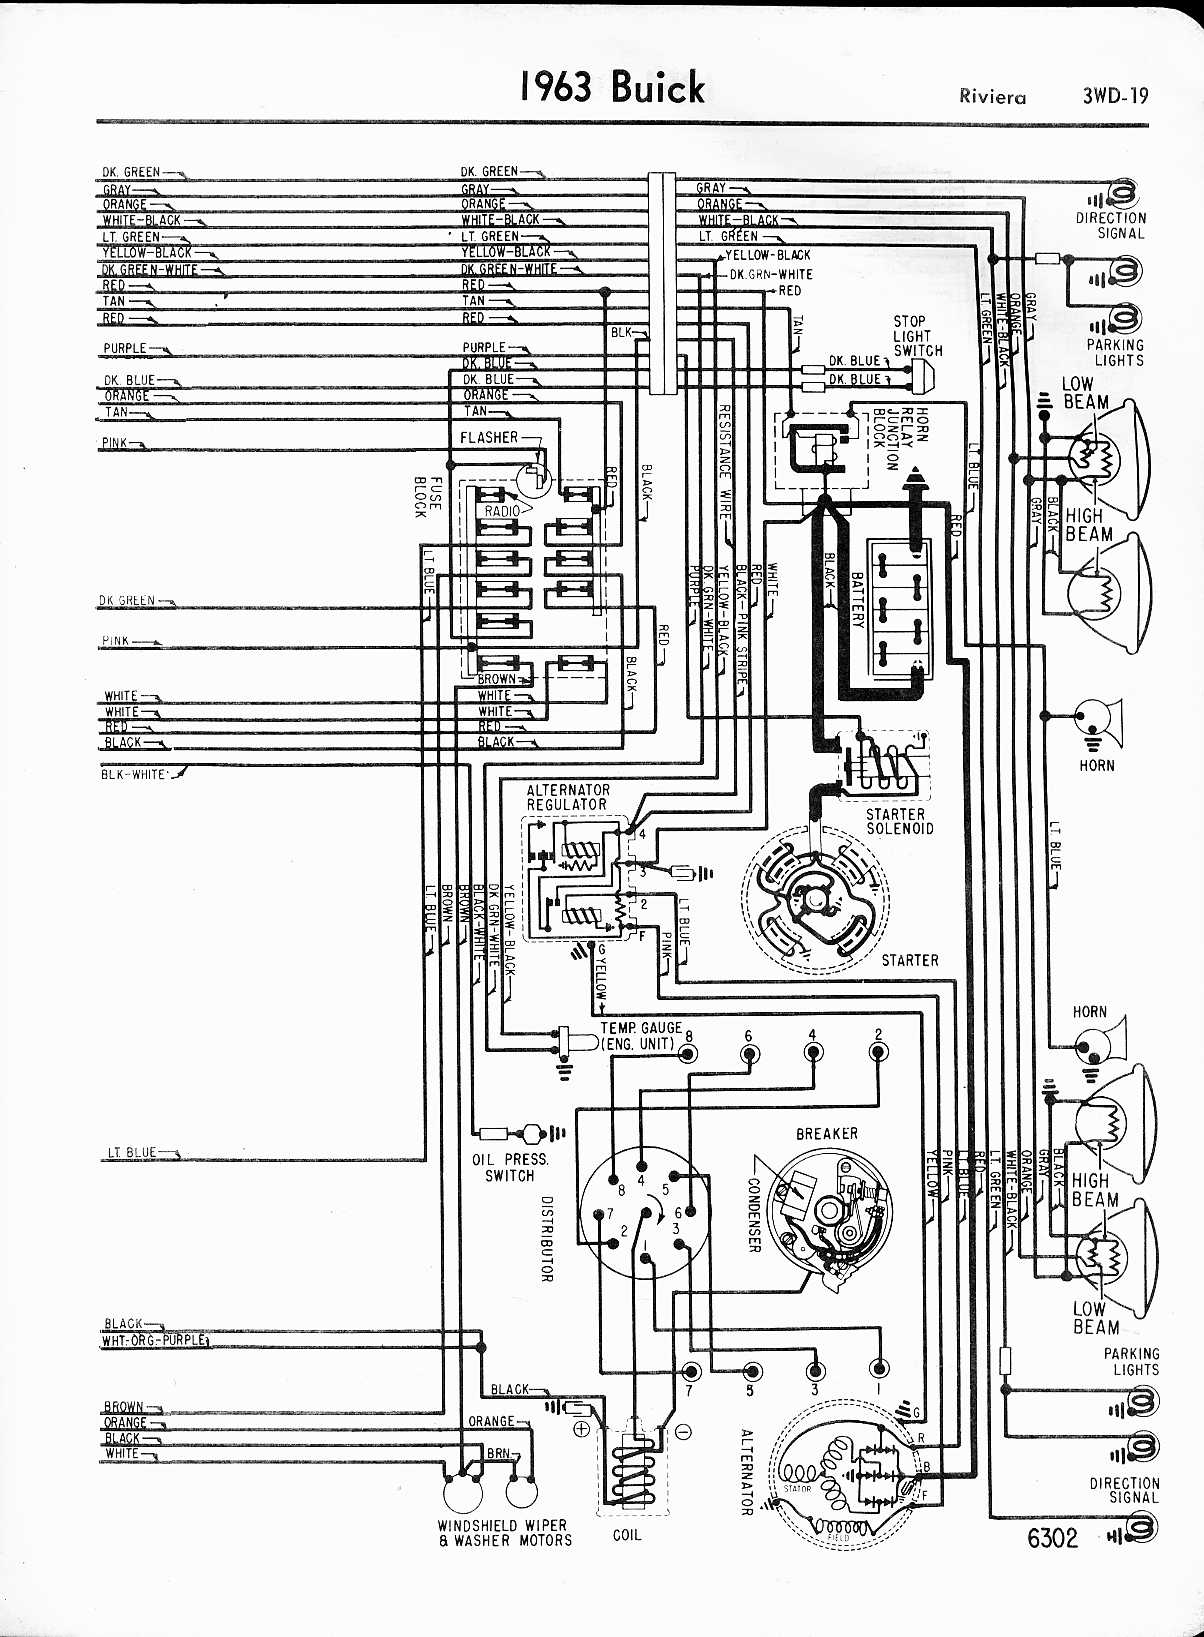 buick stereo wiring diagram 2005 honda civic lx 63 wipers not working riviera owners